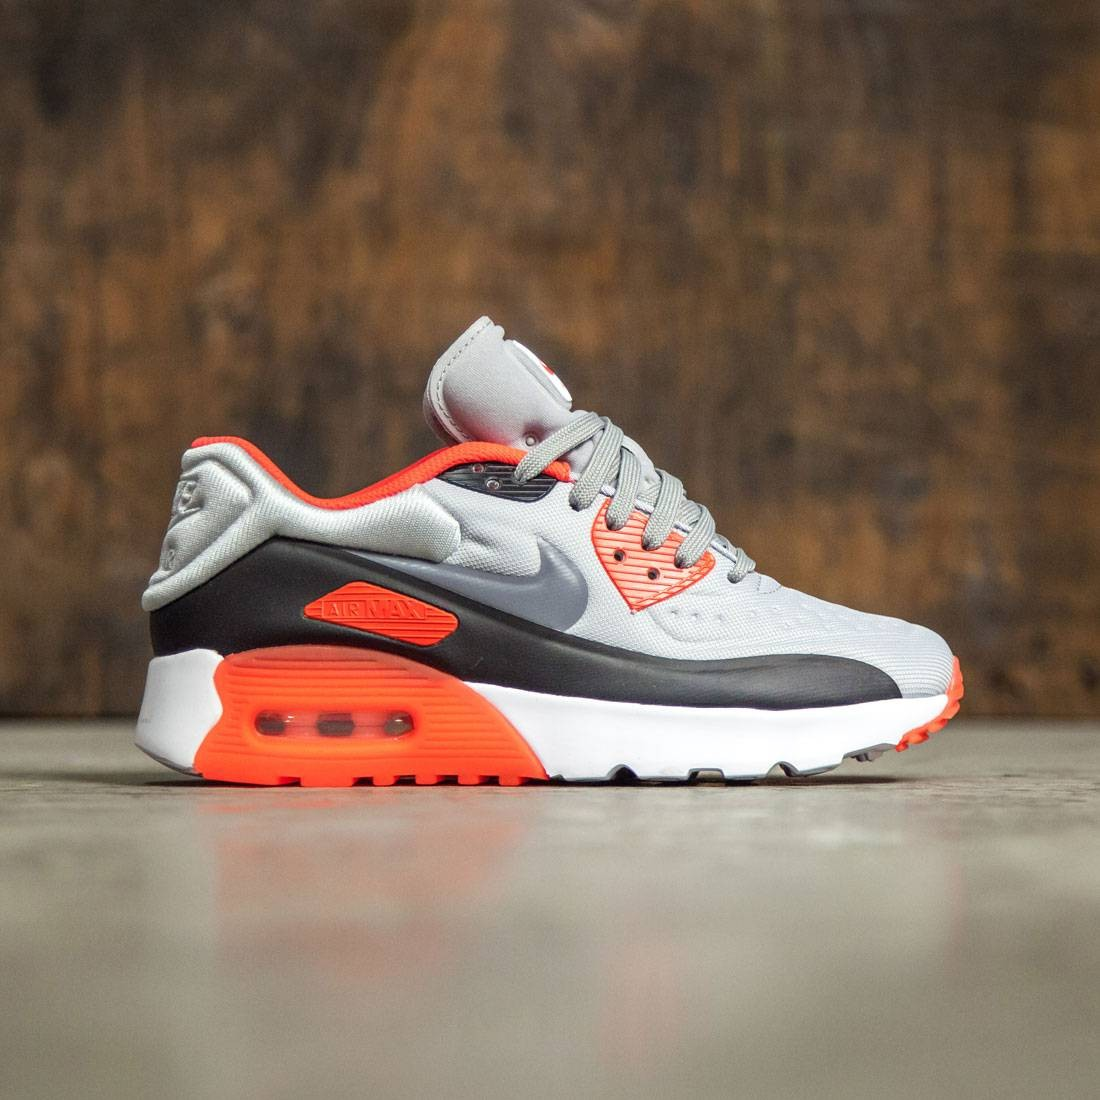 Cheap air max 90 red and grey Buy Online >OFF67% Discounted